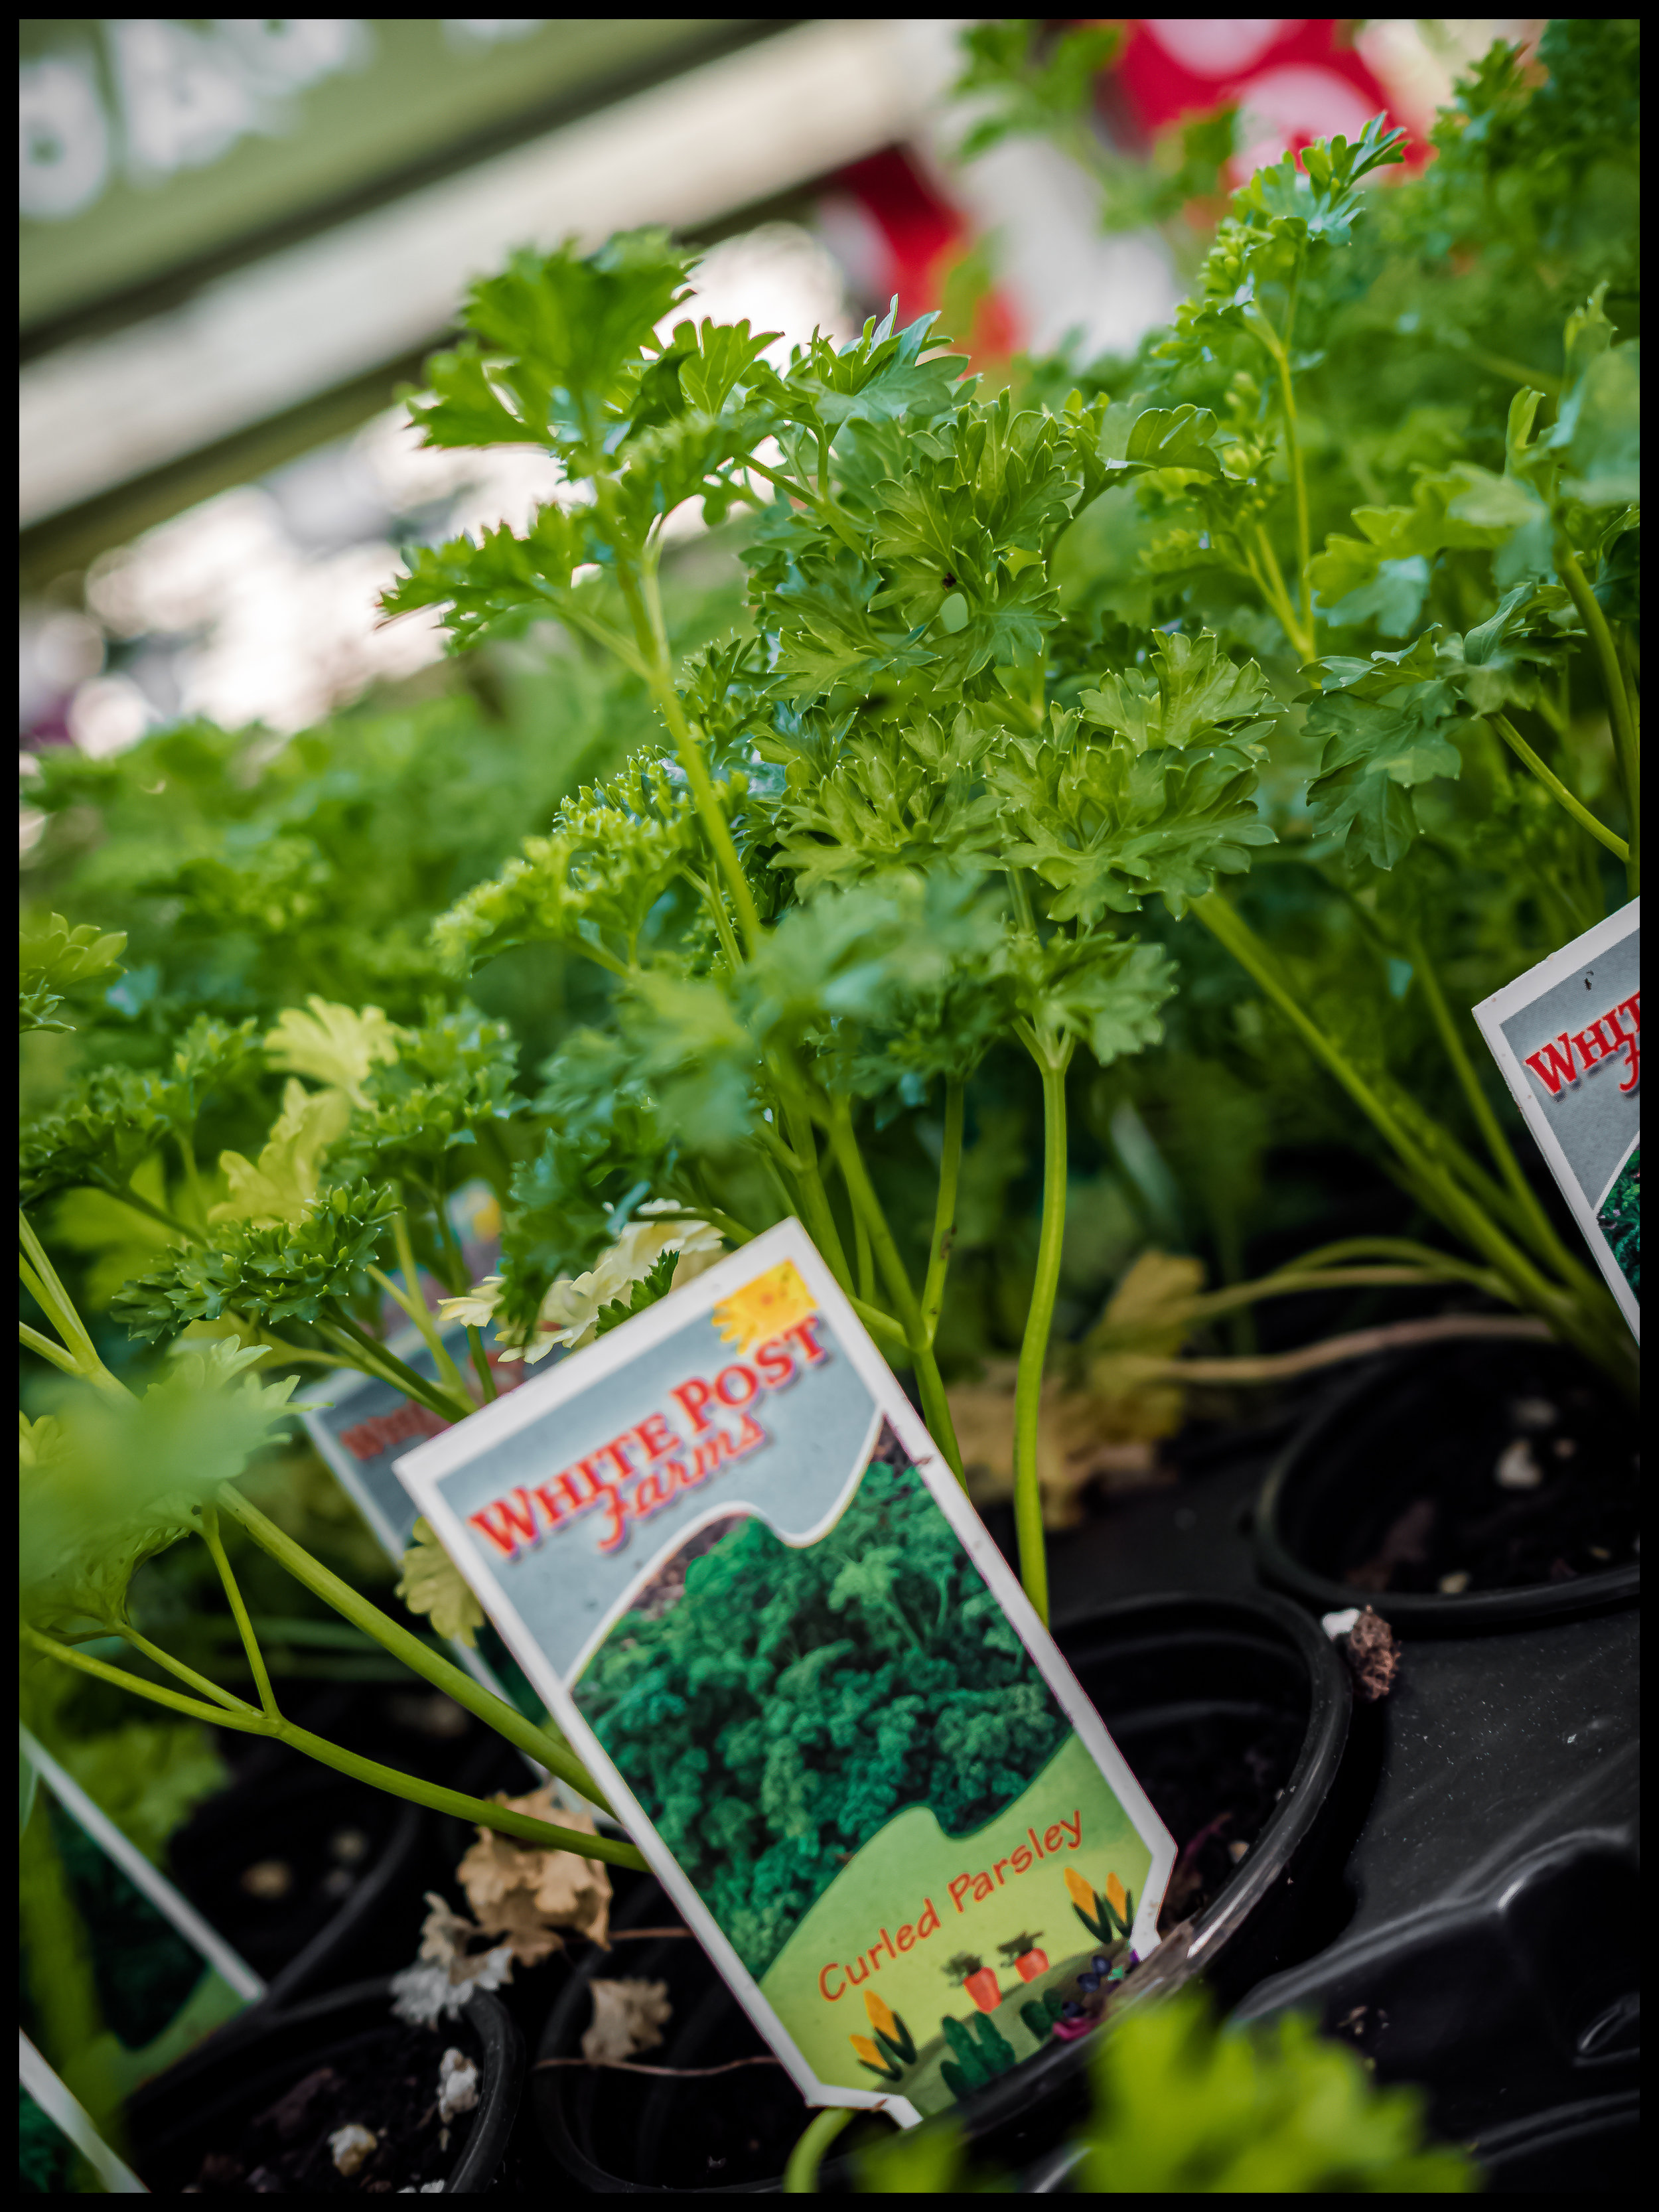 Parsley is great with any Italian dish, especially some Chicken Parmesan